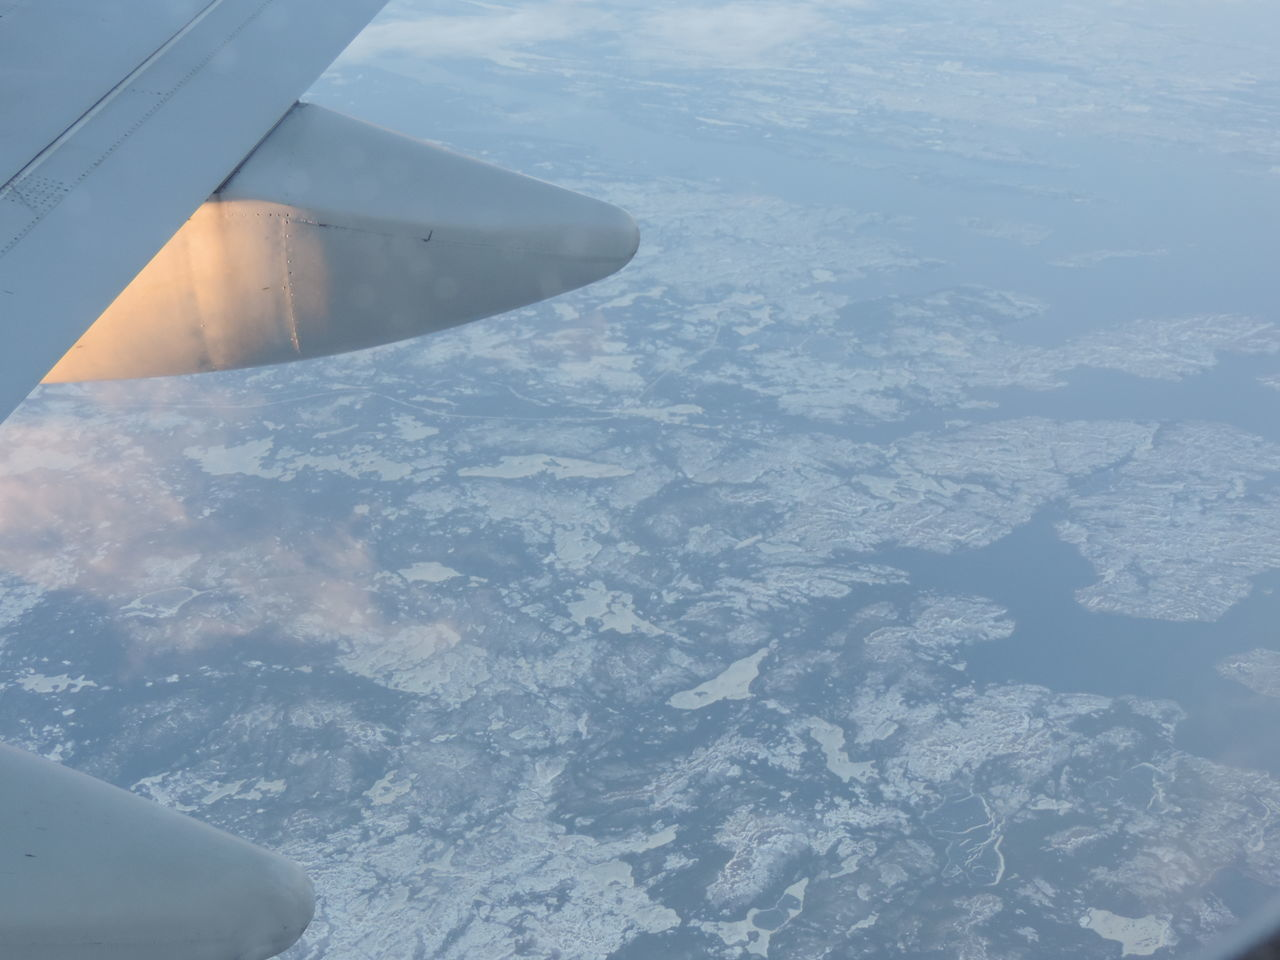 Looking down at the icebergs and icecaps near Greenland heading for JFK, NY 747 Aerial View Atlantic Ocean Boeing Icebergs Nature Scenics Sea Virgin Atlantic Wing View